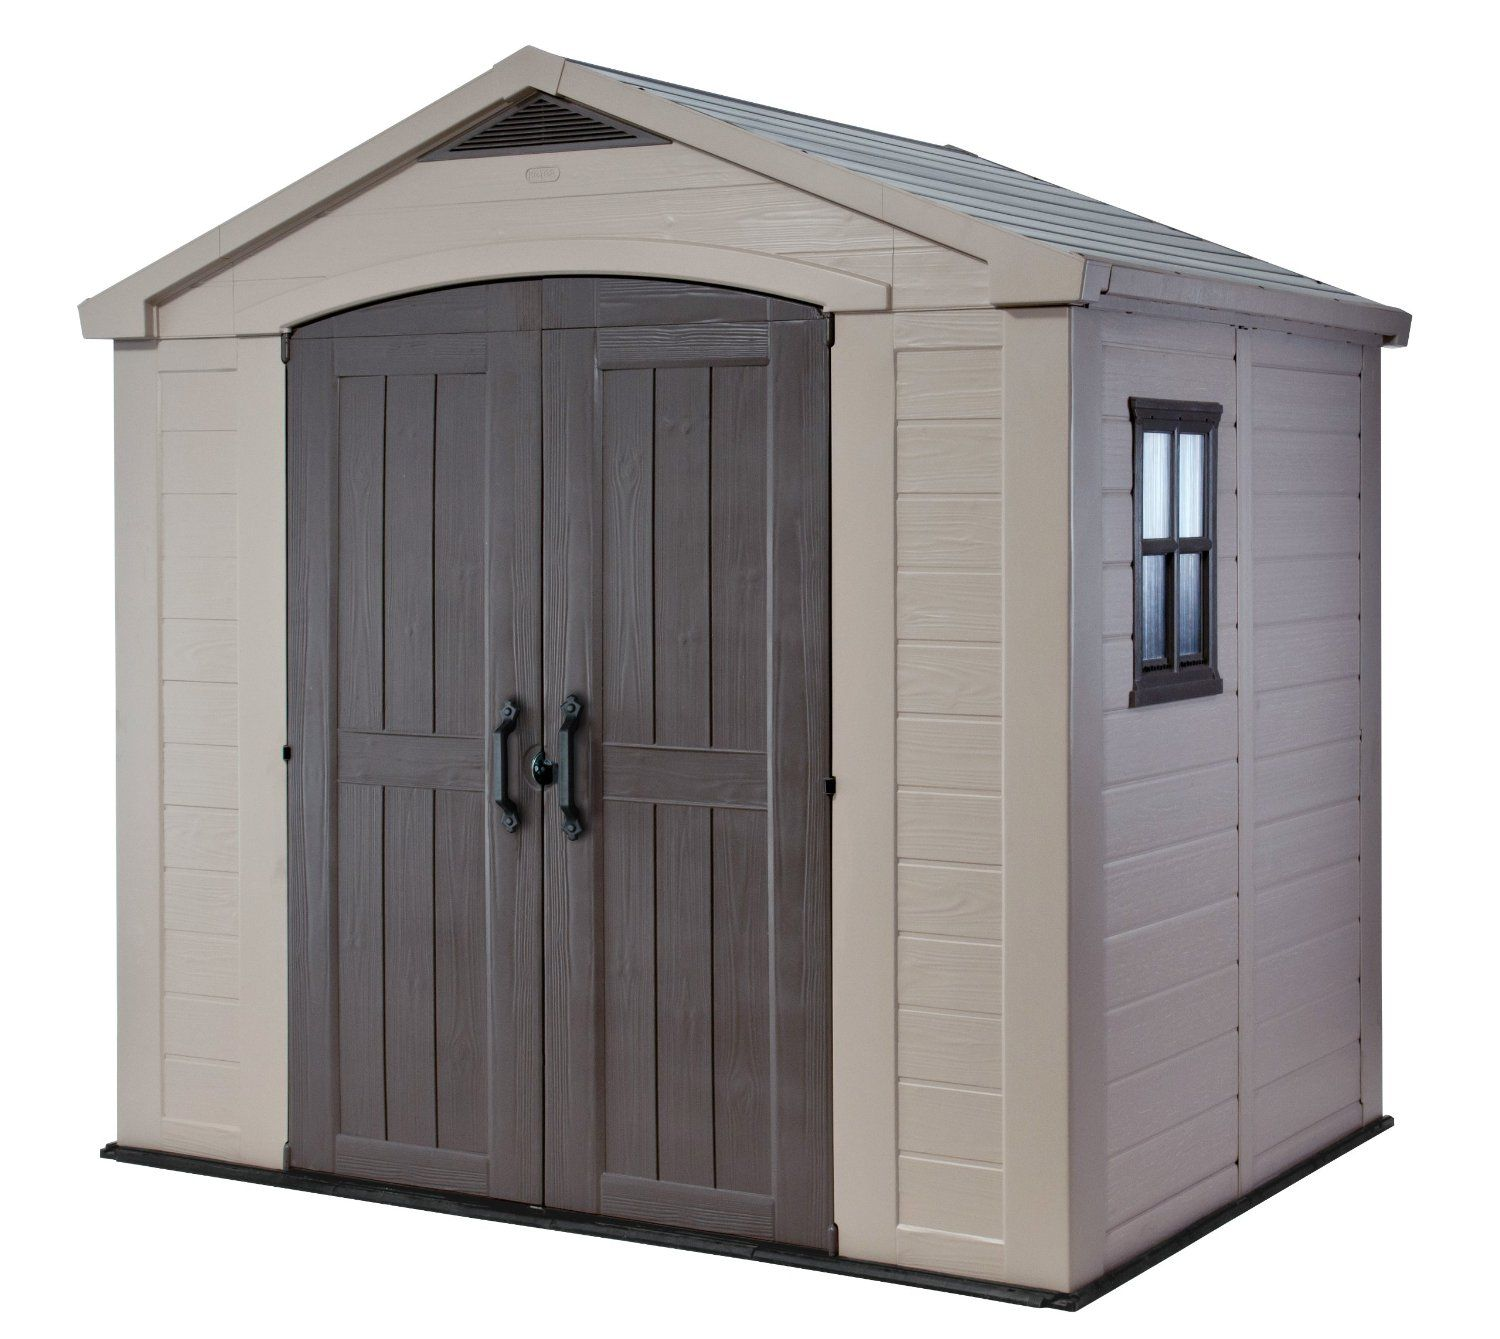 Keter 8 x 6 Factor Shed Amazon Garden & Outdoors